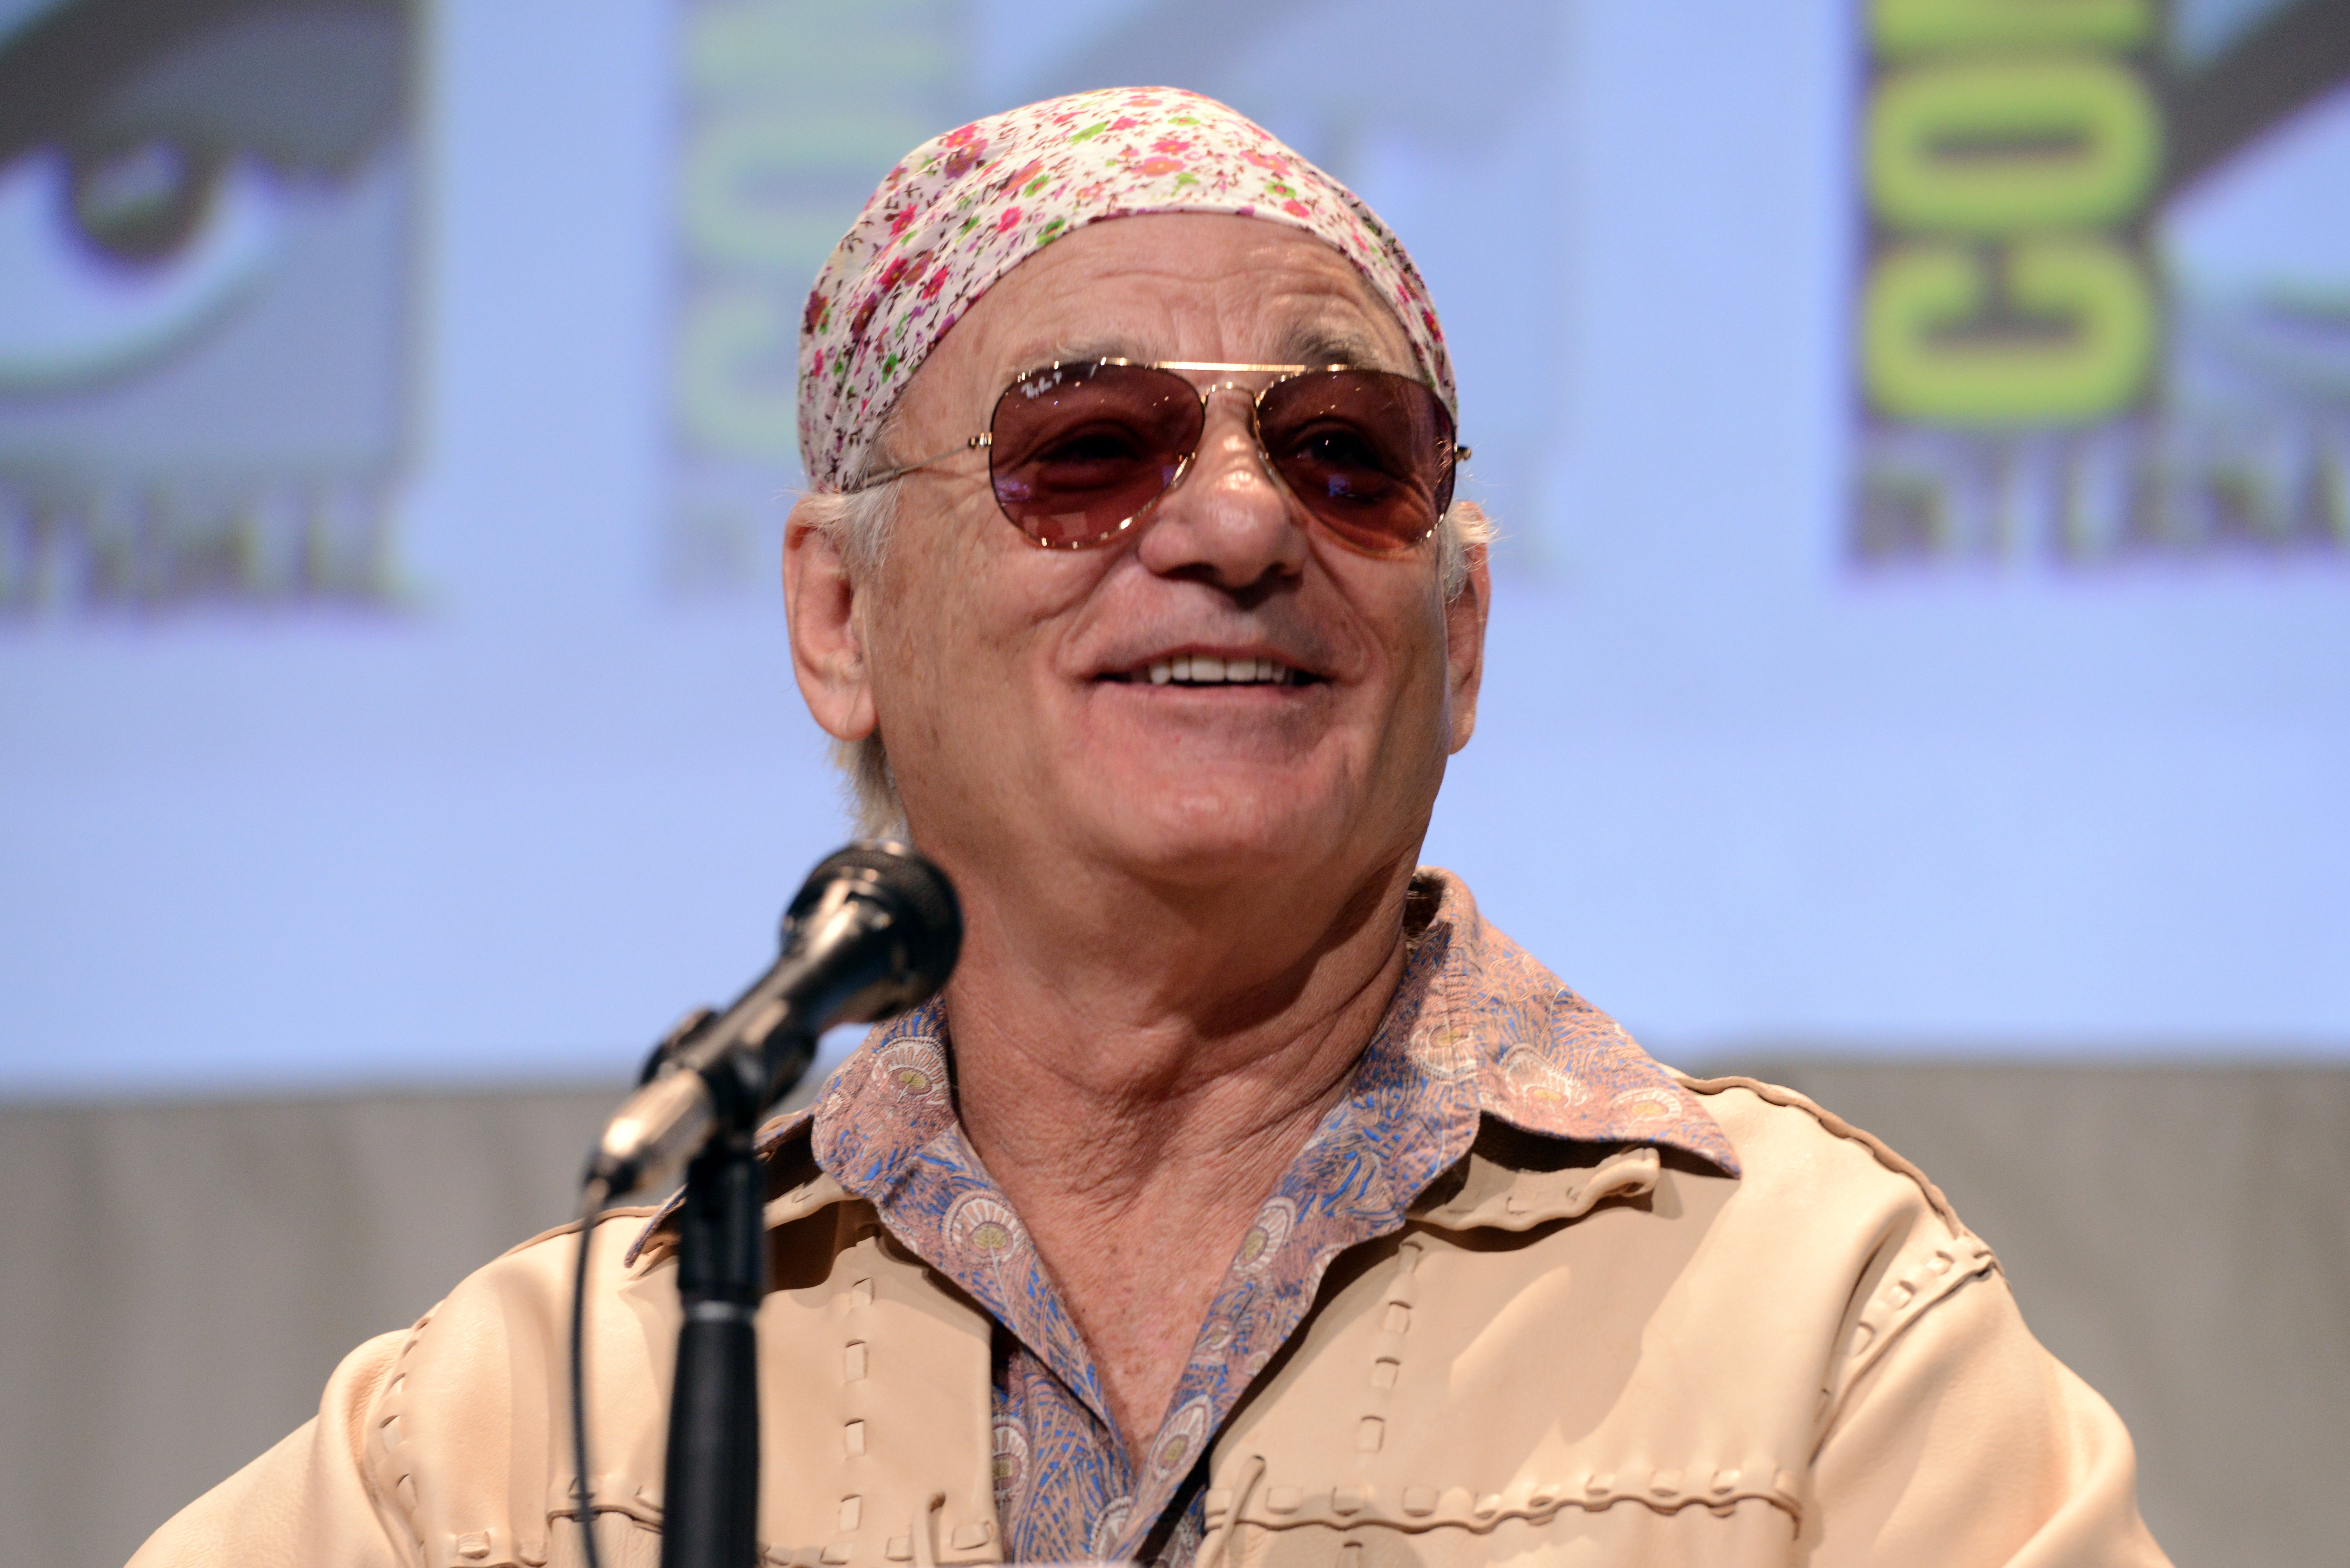 Bill Murray speaks at Comic-Con International 2015 in San Diego on July 9, 2015.